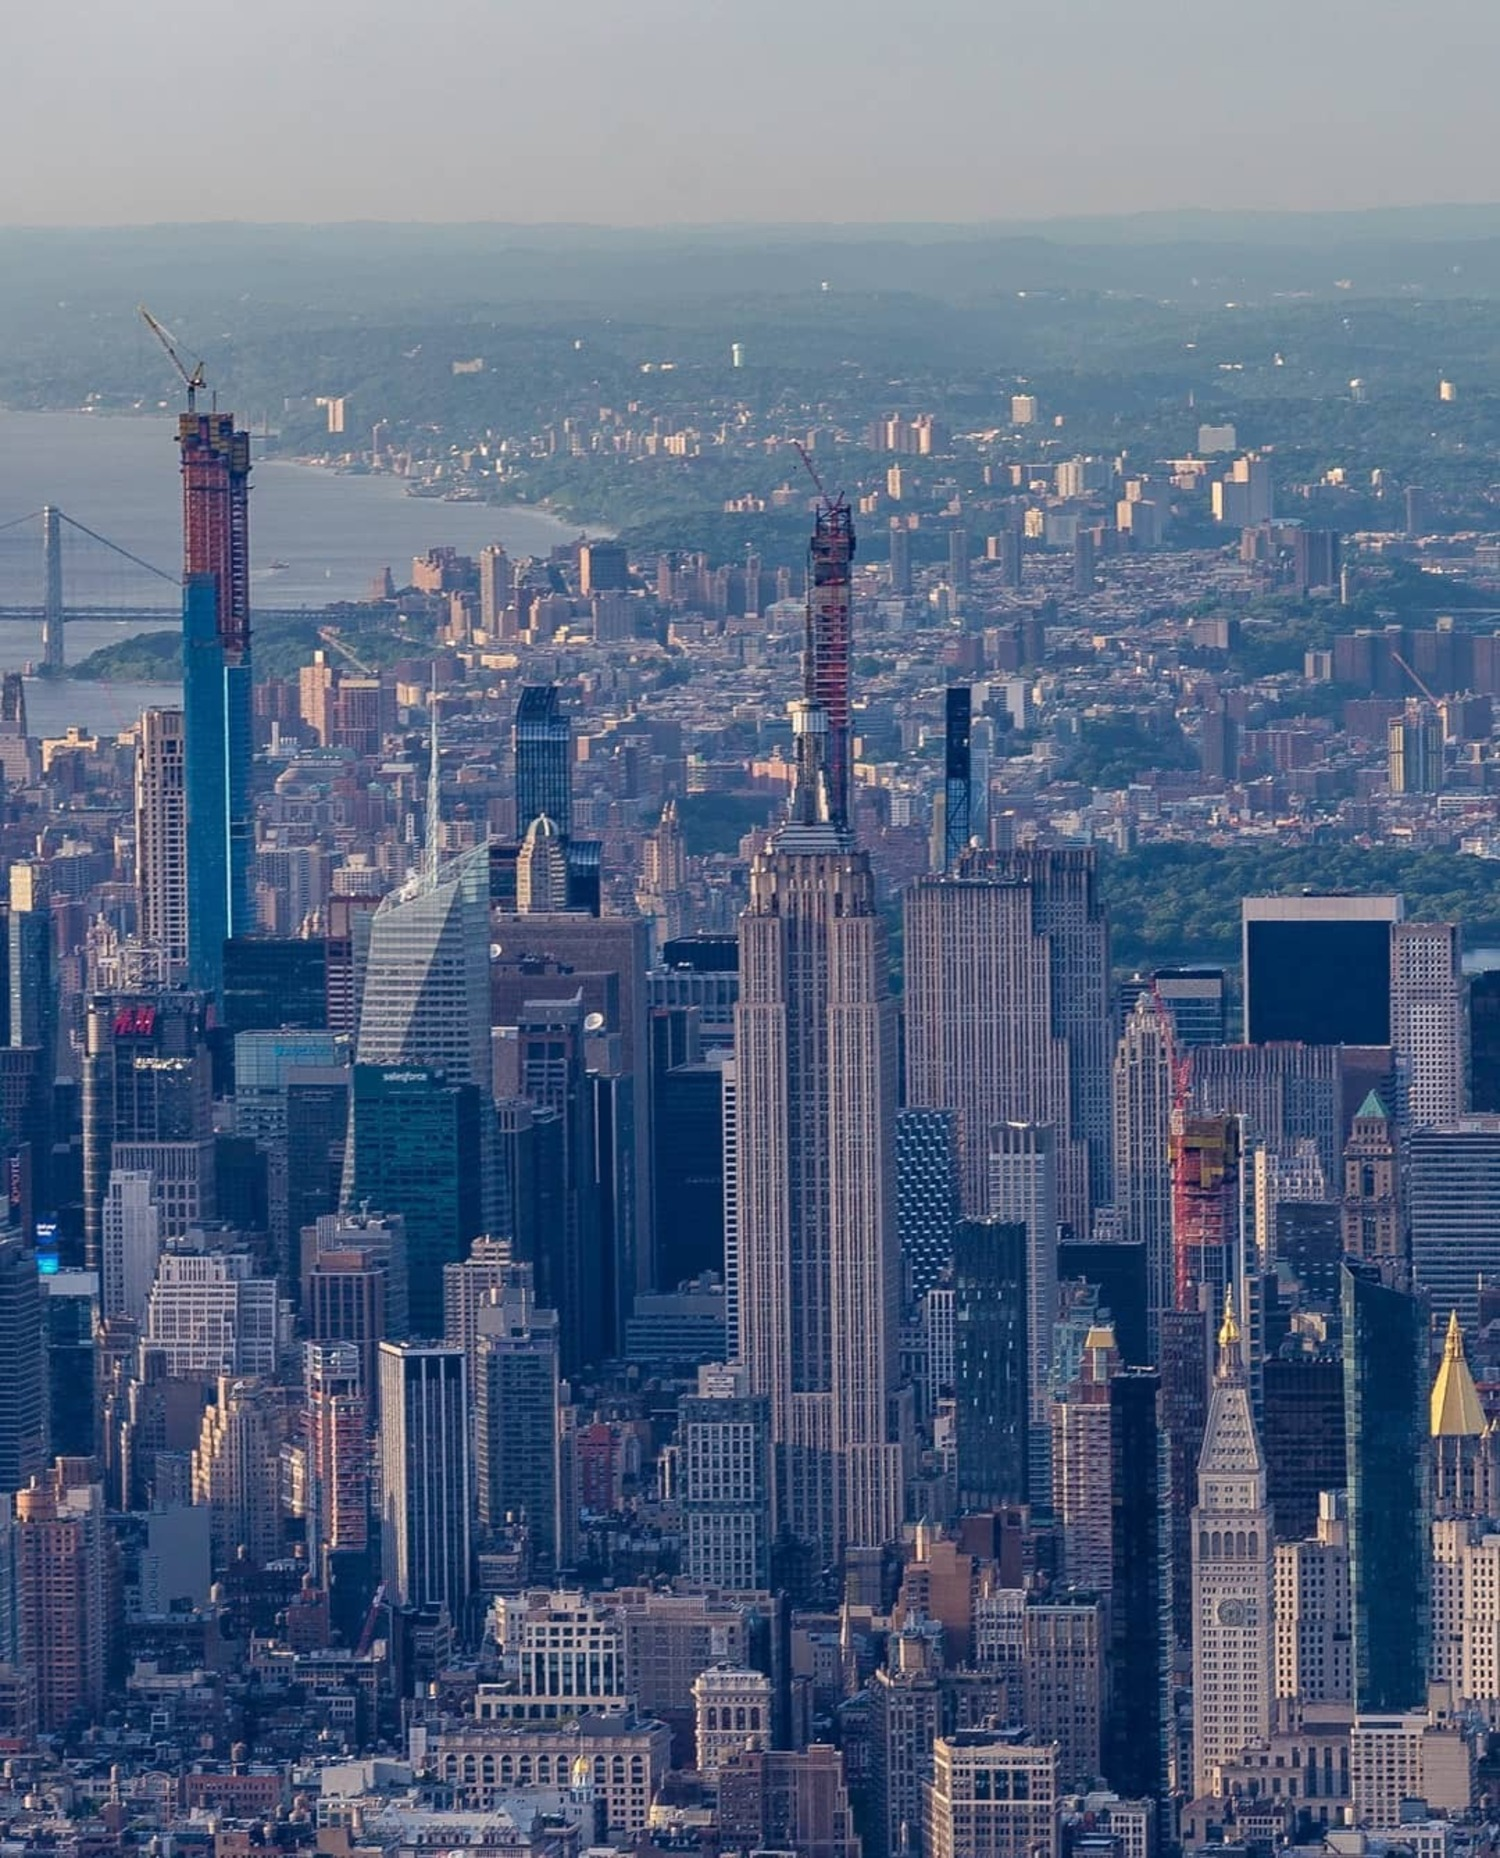 Looking North Over Midtown Manhattan